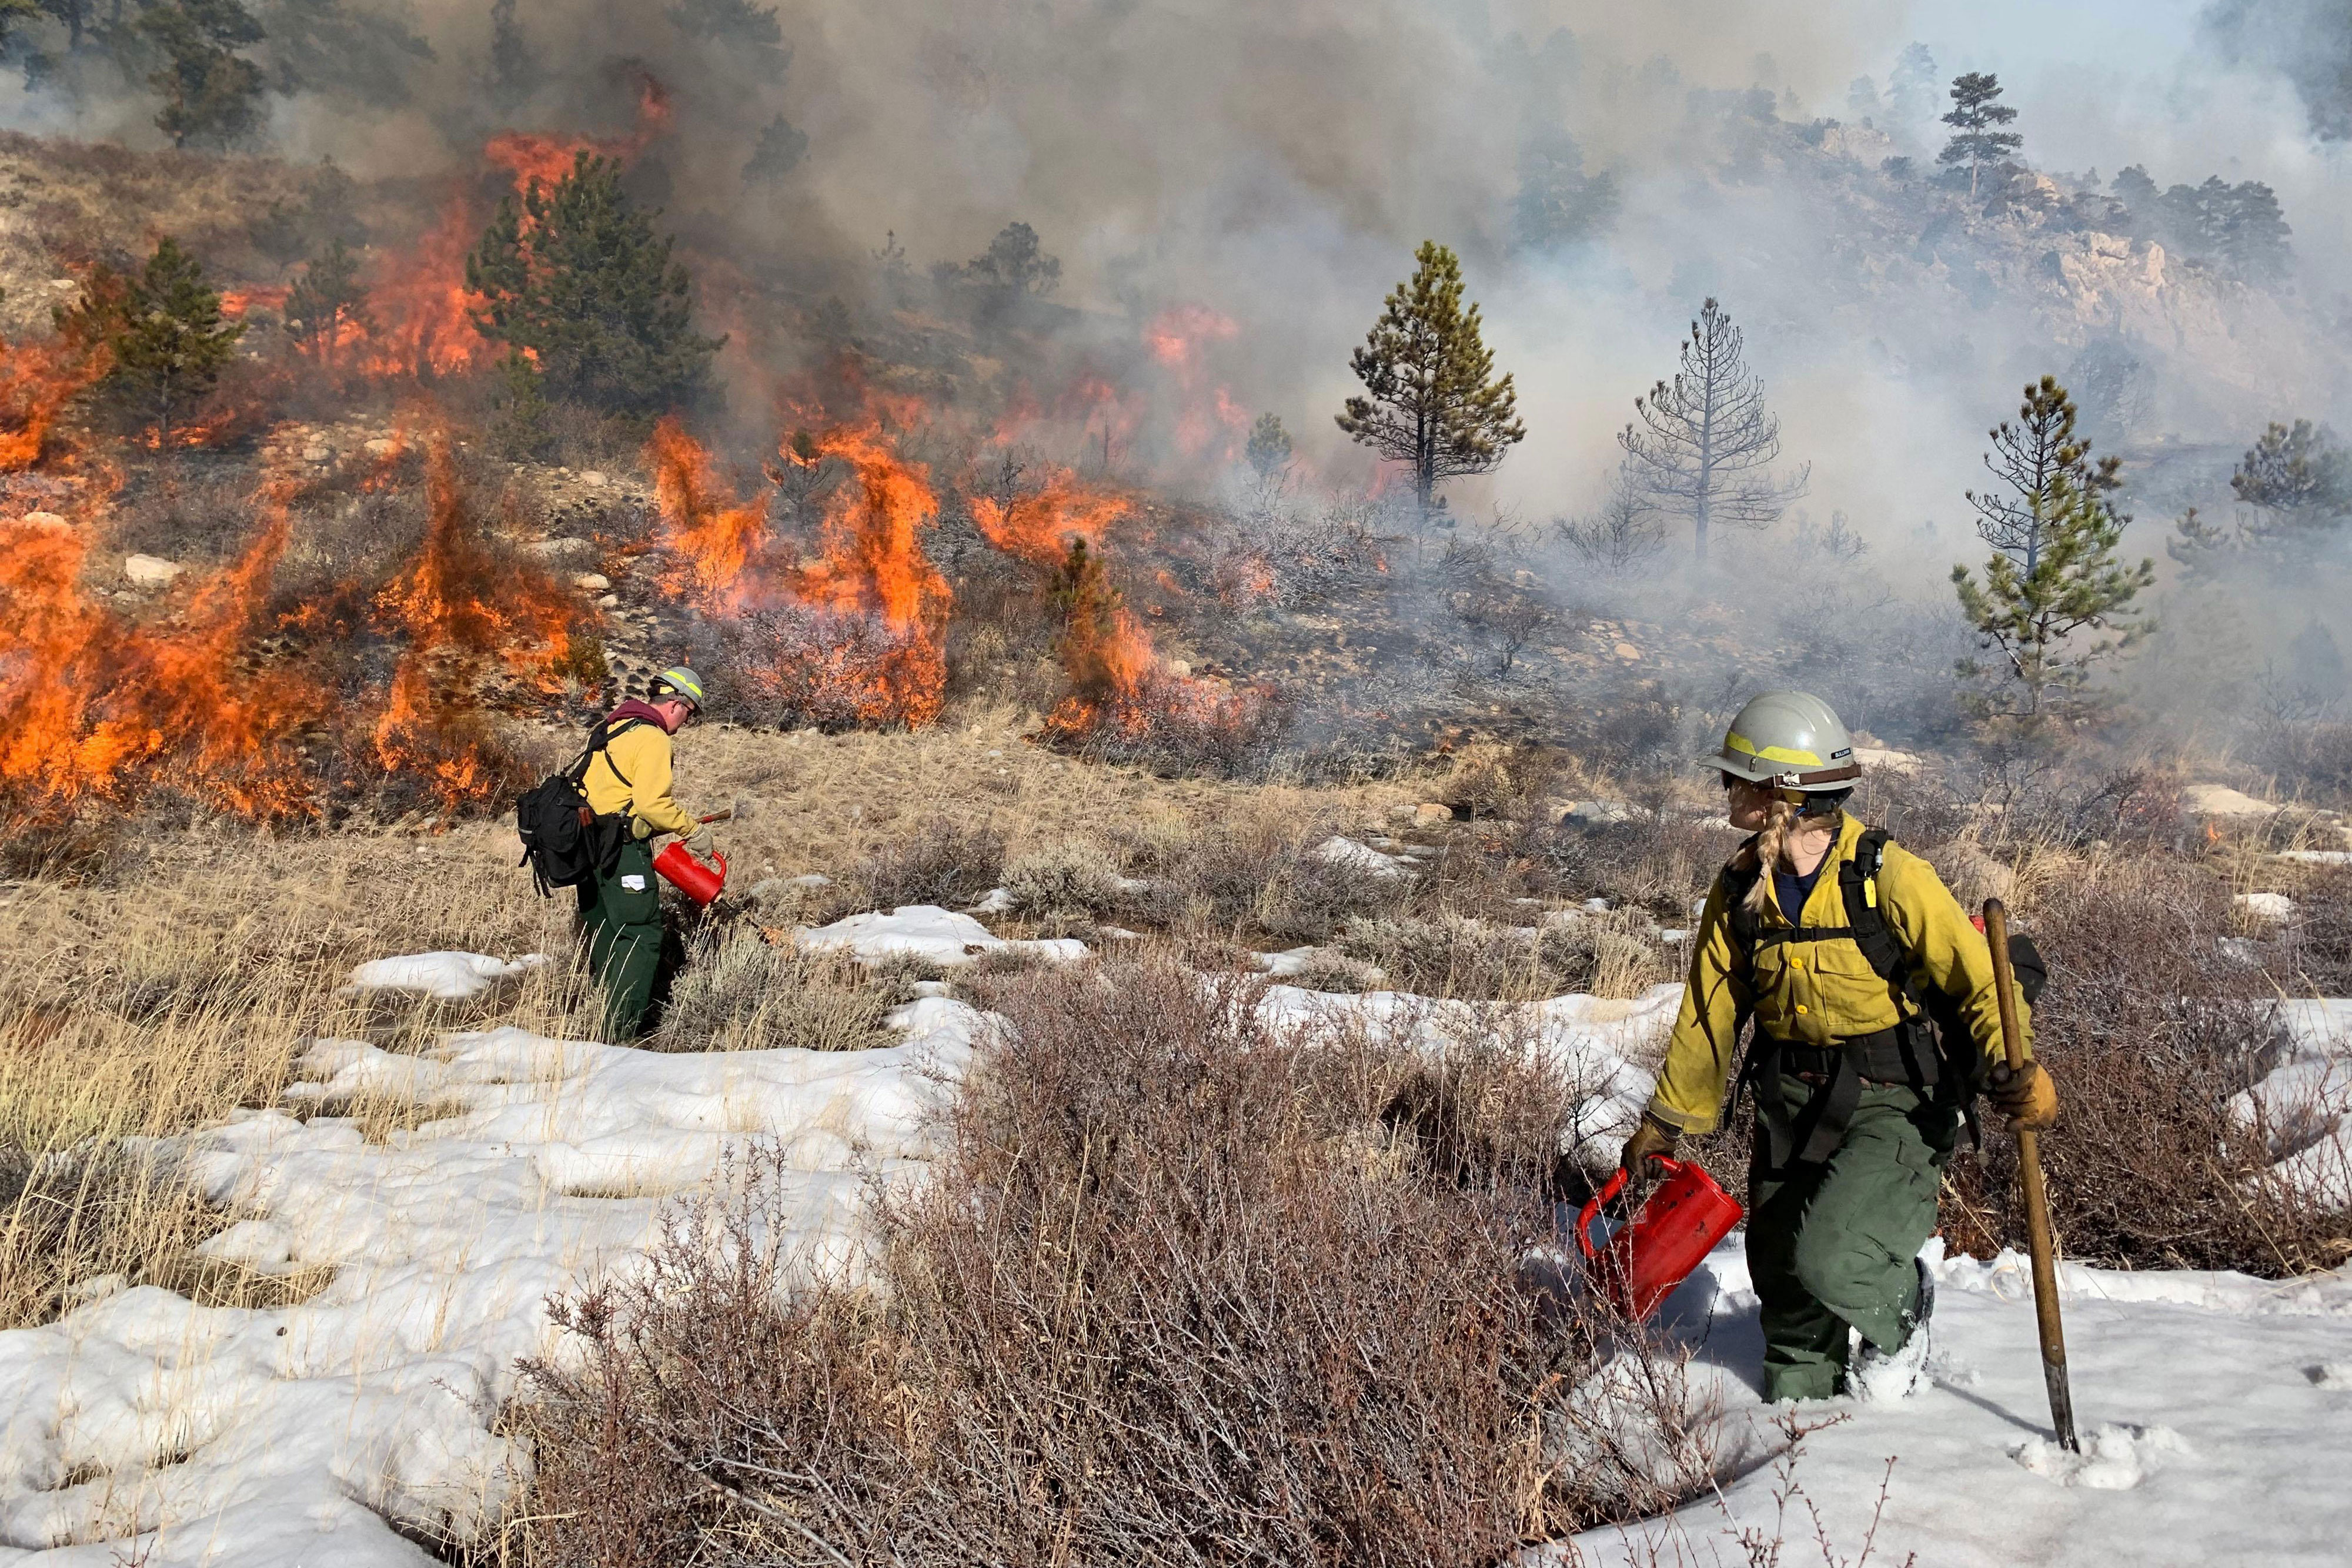 <p>Firefighters from Larimer County Emergency Services joined U.S. Forest Service firefighters on the Bighorn Sheep Prescribed Burn ion the north side of the Poudre Canyon near the Roaring Creek Trailhead, March 5, 2019.</p>